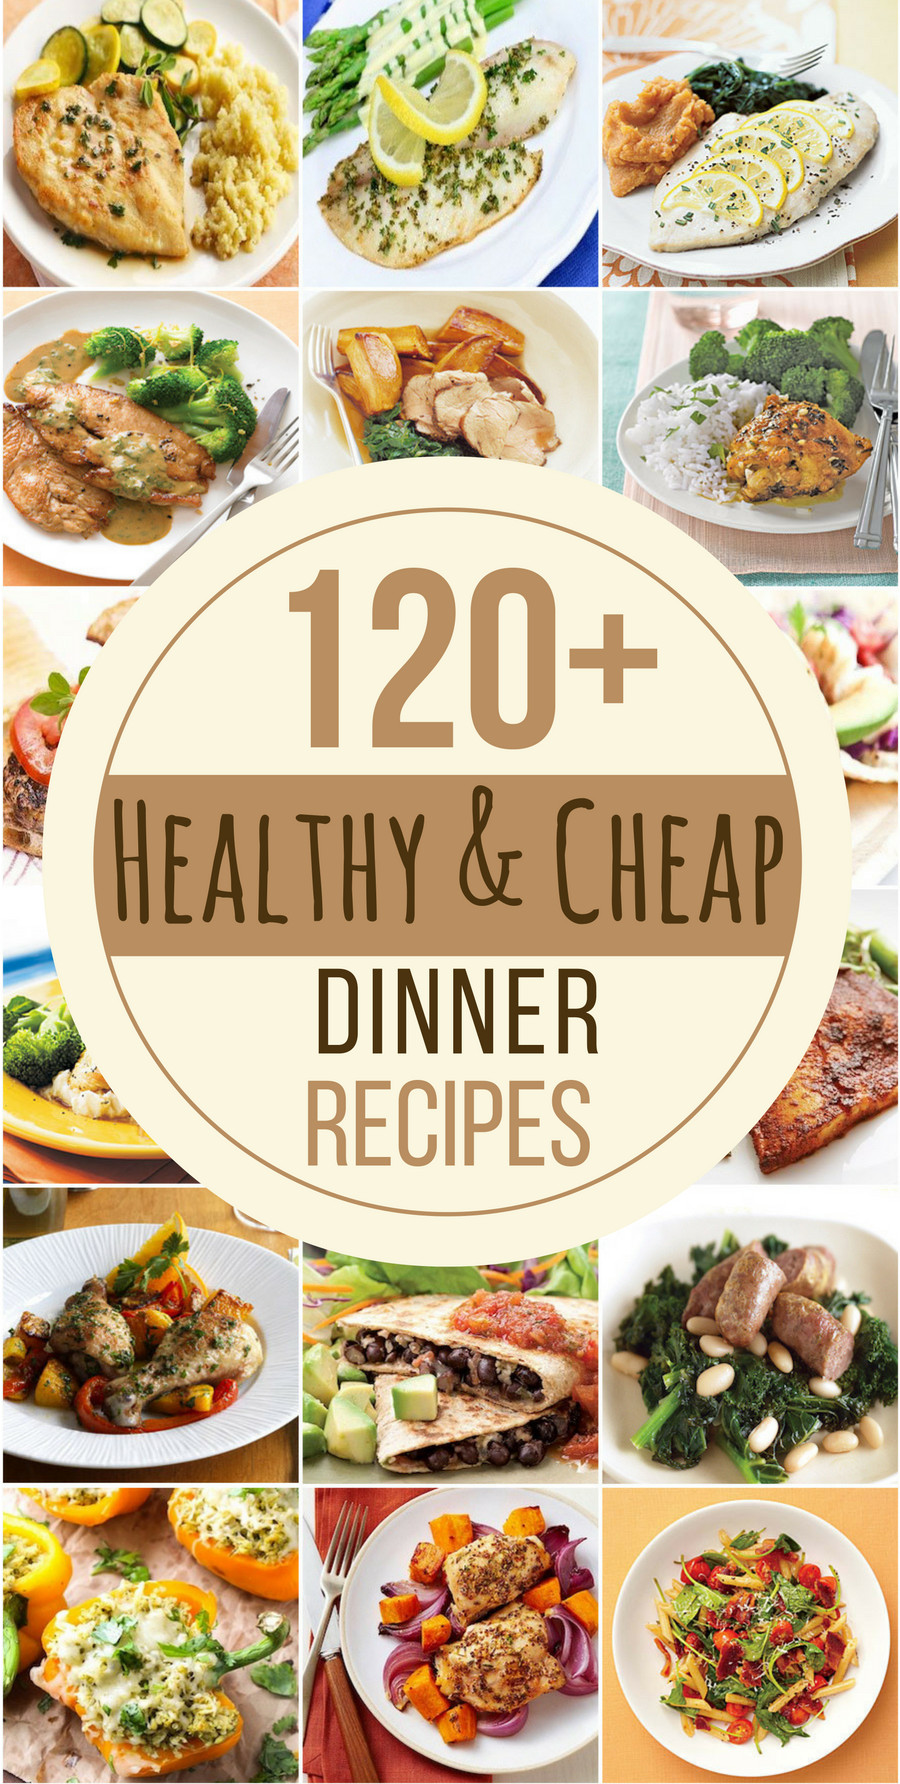 Healthy Cheap Dinner  120 Healthy and Cheap Dinner Recipes Prudent Penny Pincher